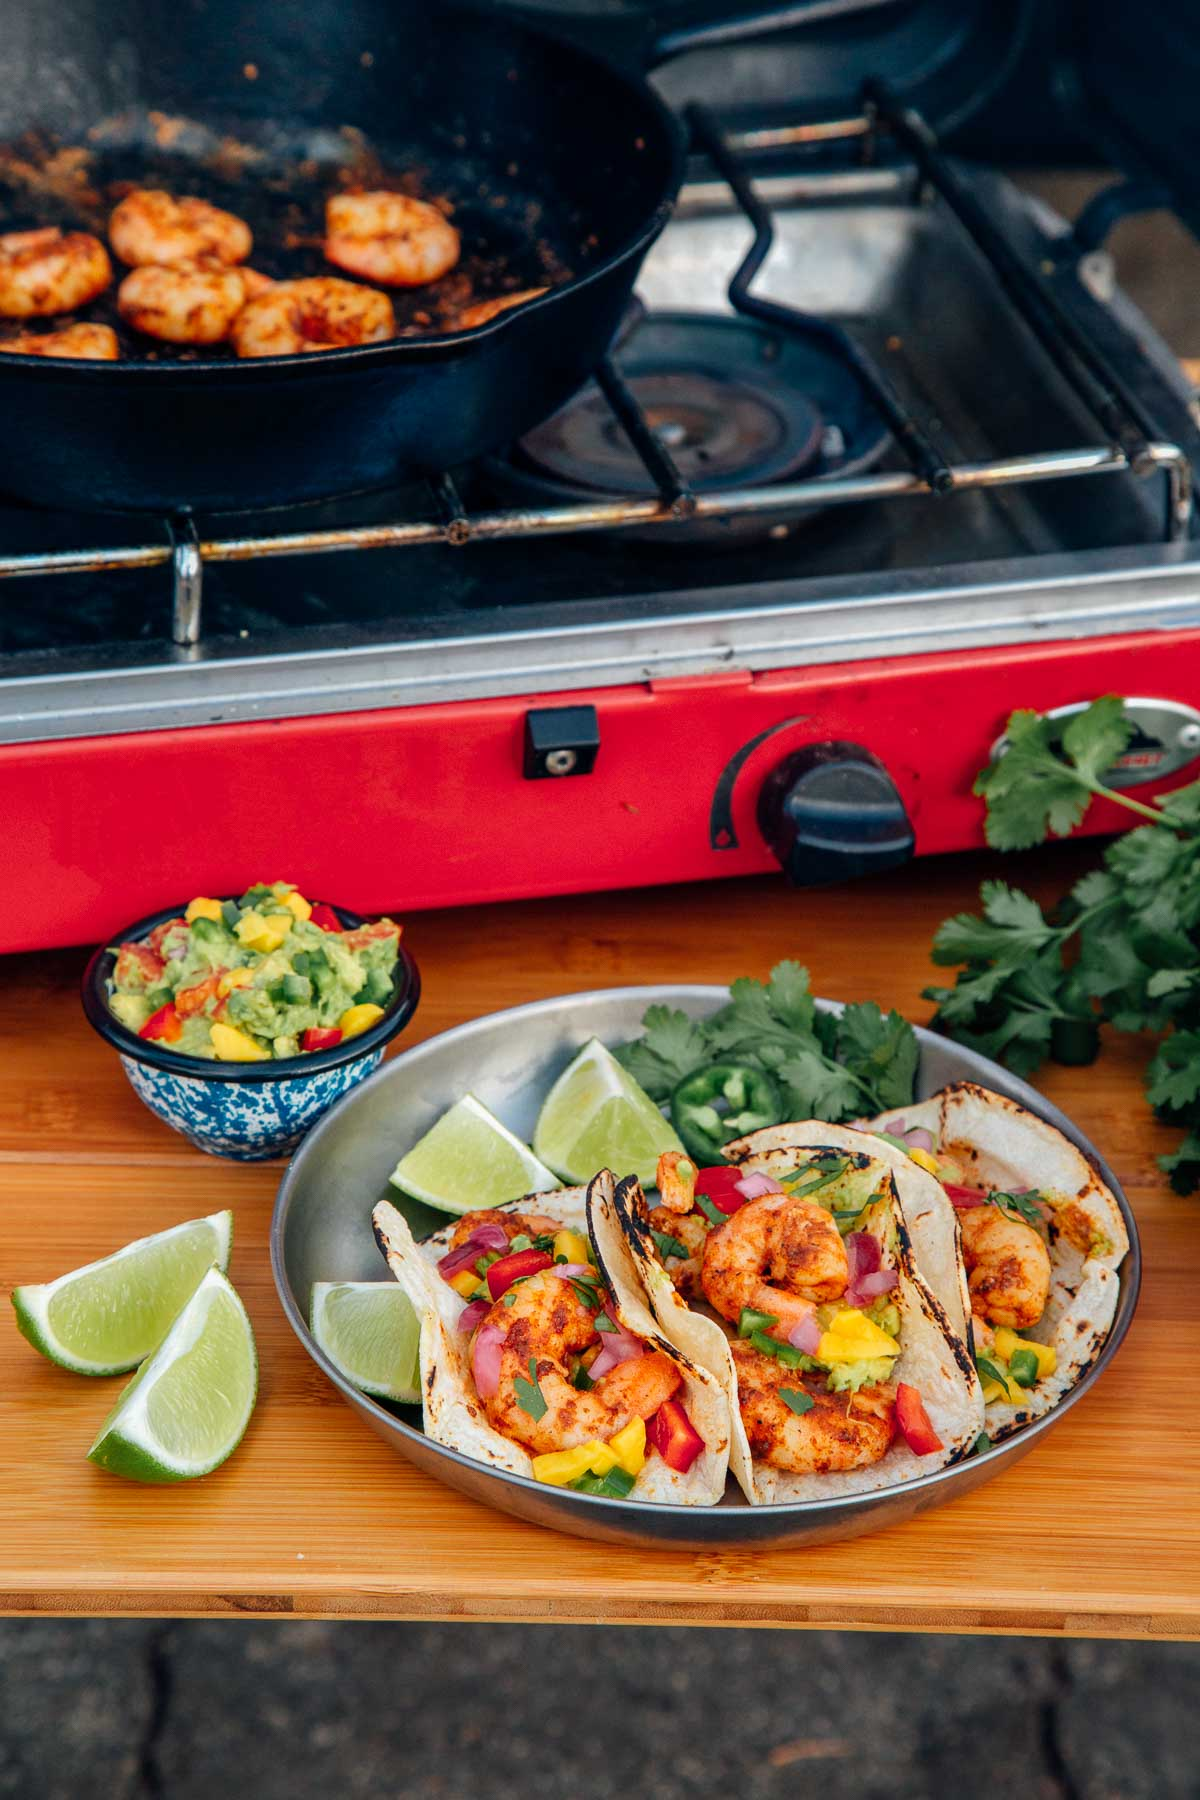 Three shrimp tacos on a silver plate with sliced limes and a small bowl of guacamole on the side. A camp stove is in the background.